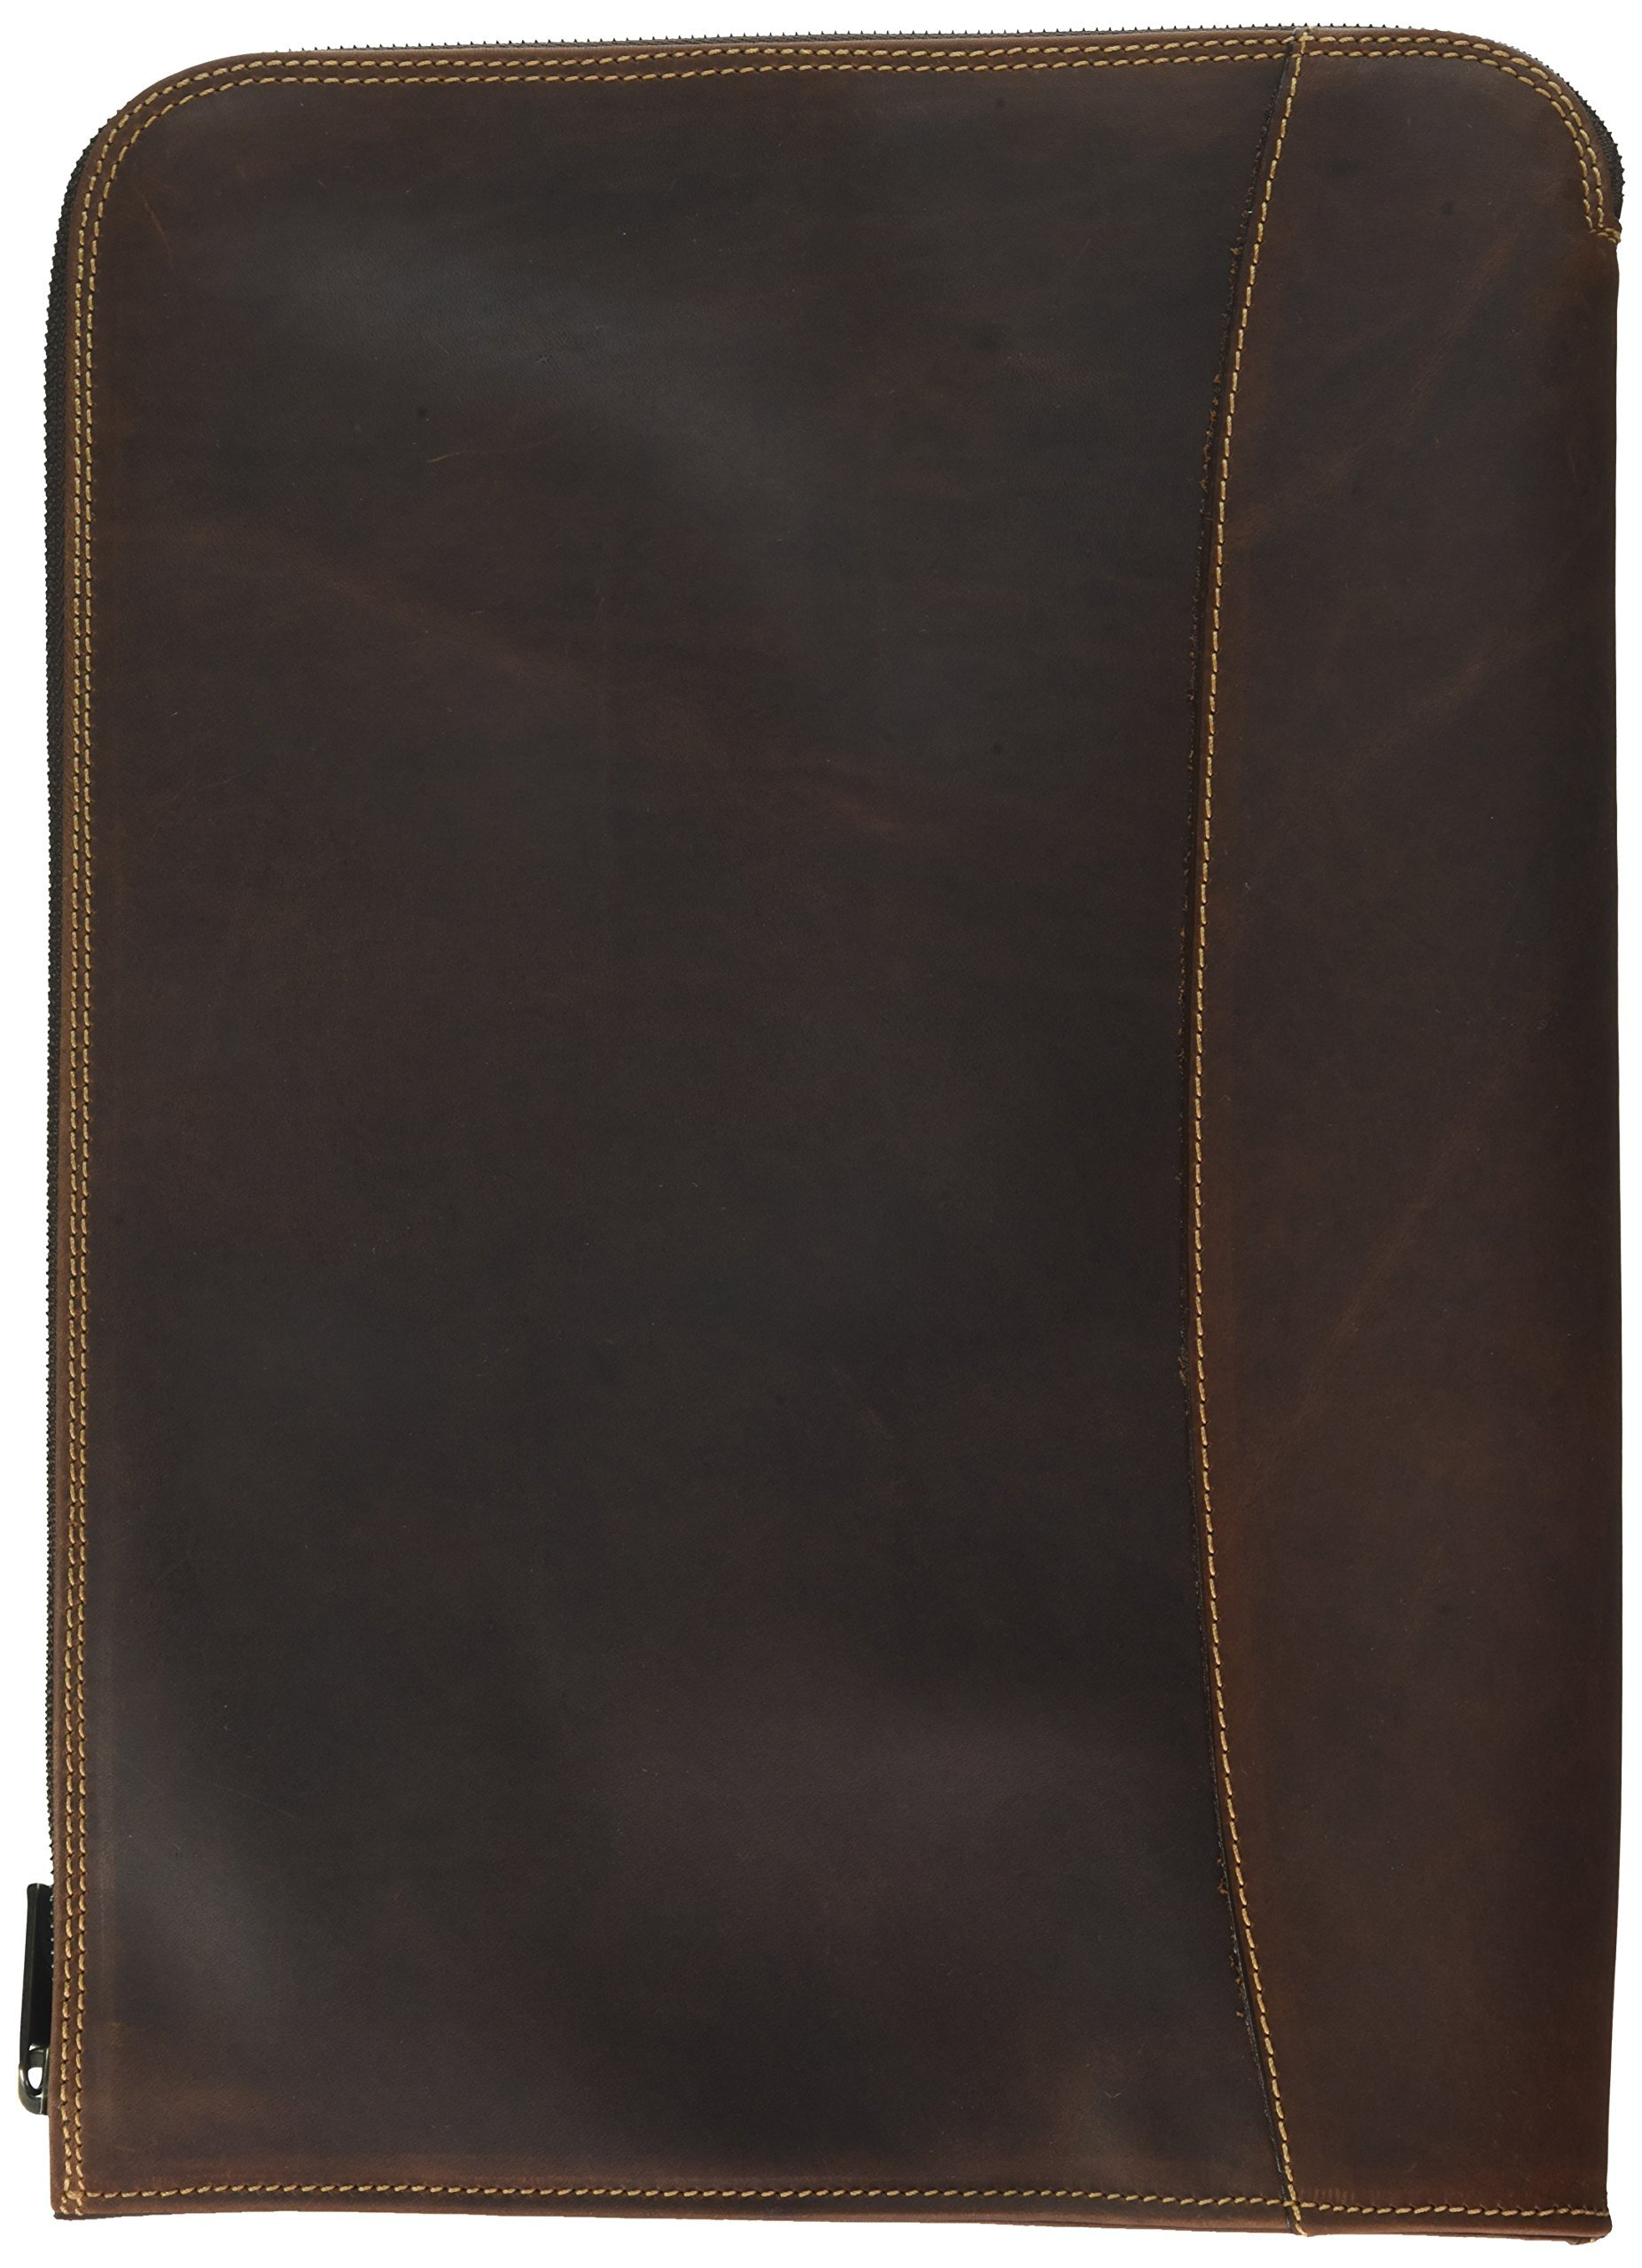 Levenger AL6330 TB NM Briefolio, Tobacco